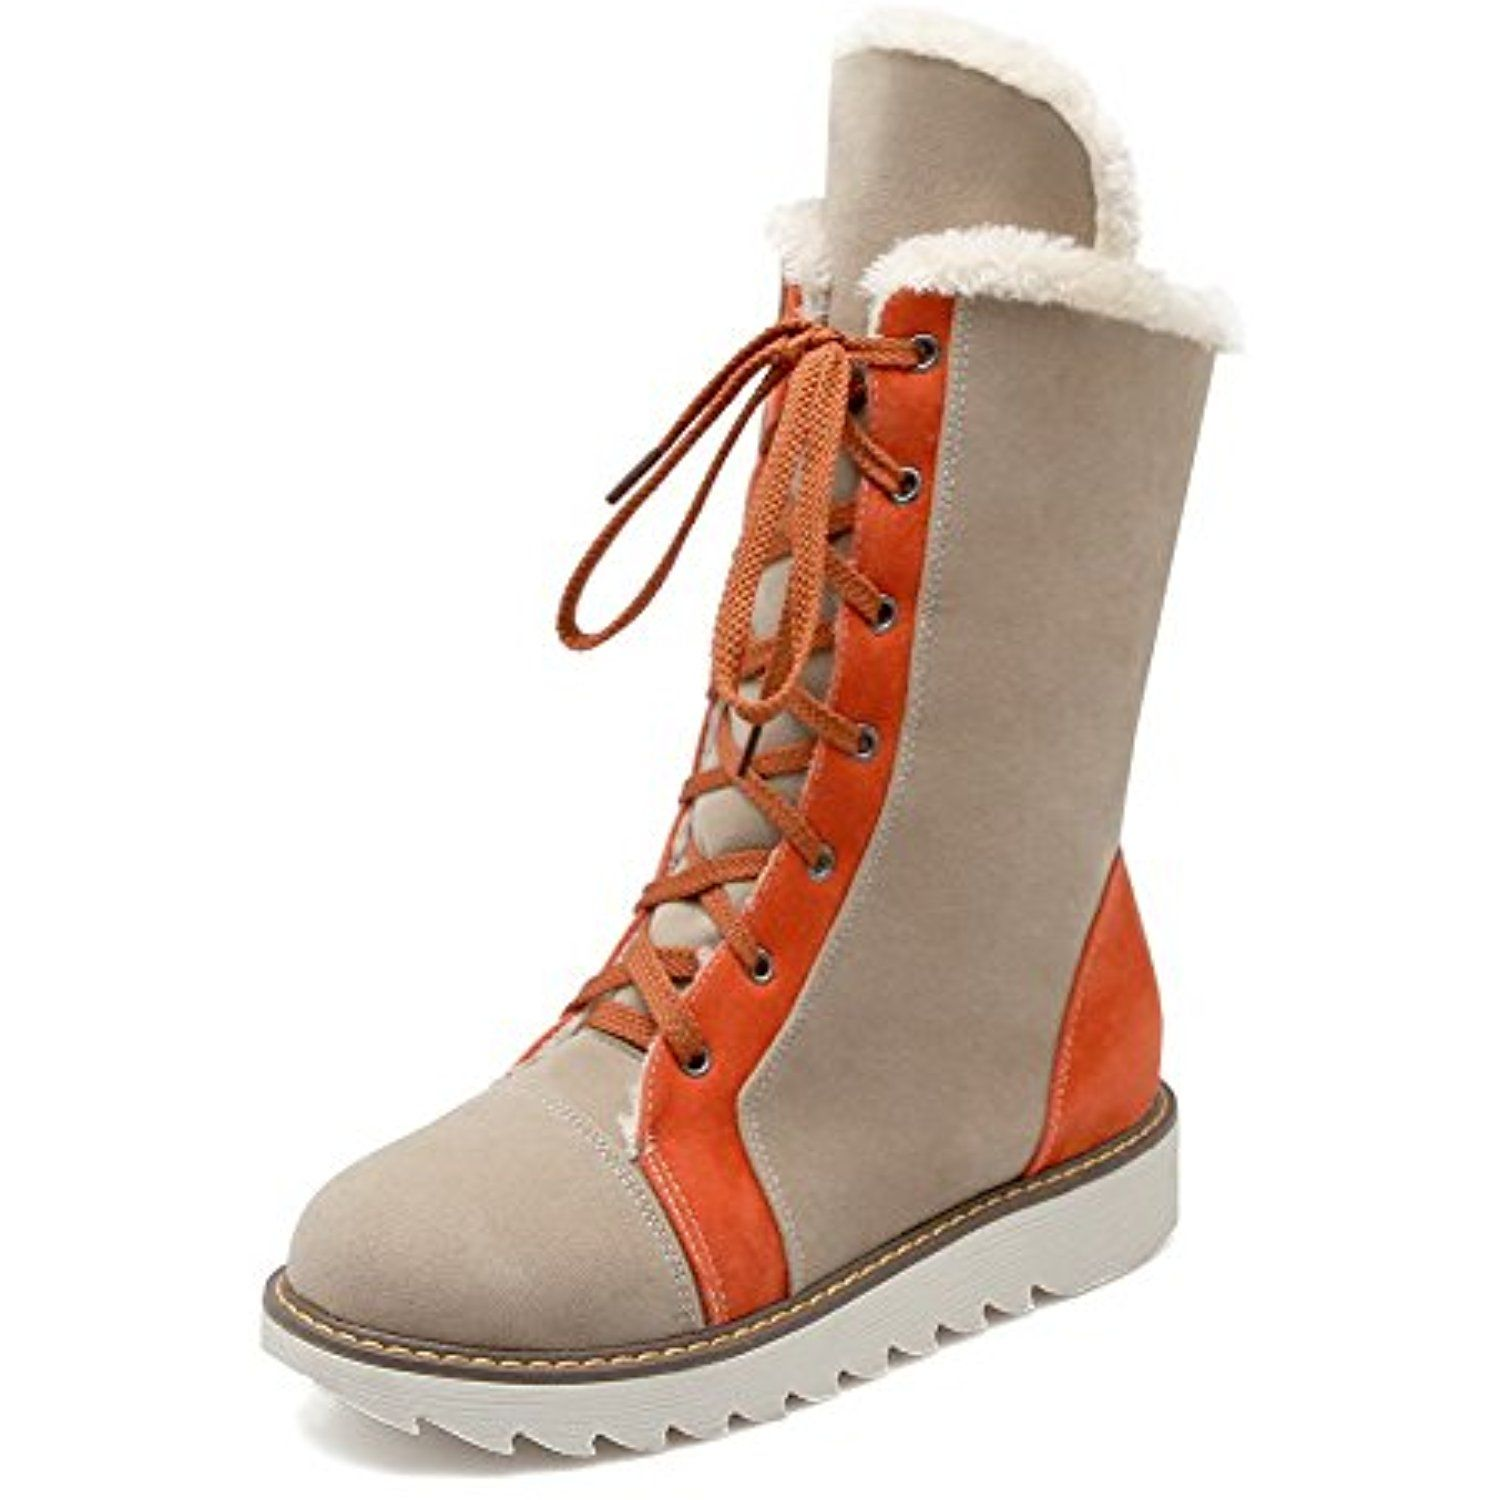 Women's Frosted Round Closed Toe Assorted Color Low-top High-Heels Boots